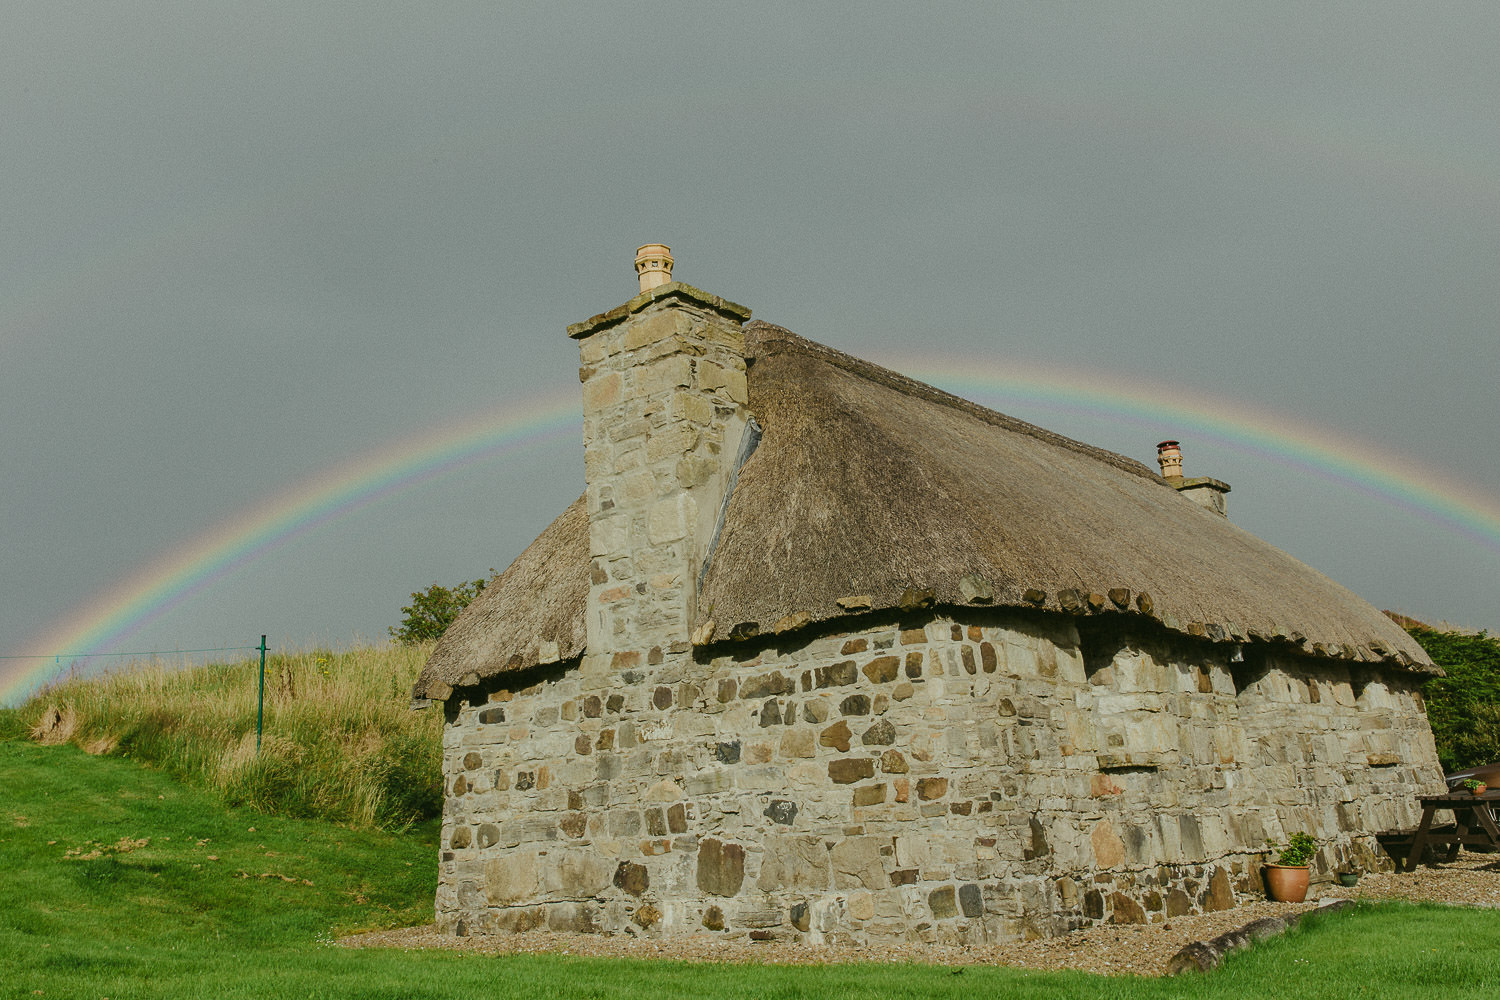 Traditionelles Cottage Steinhaus in Elgol Schottland mit Regenbogen